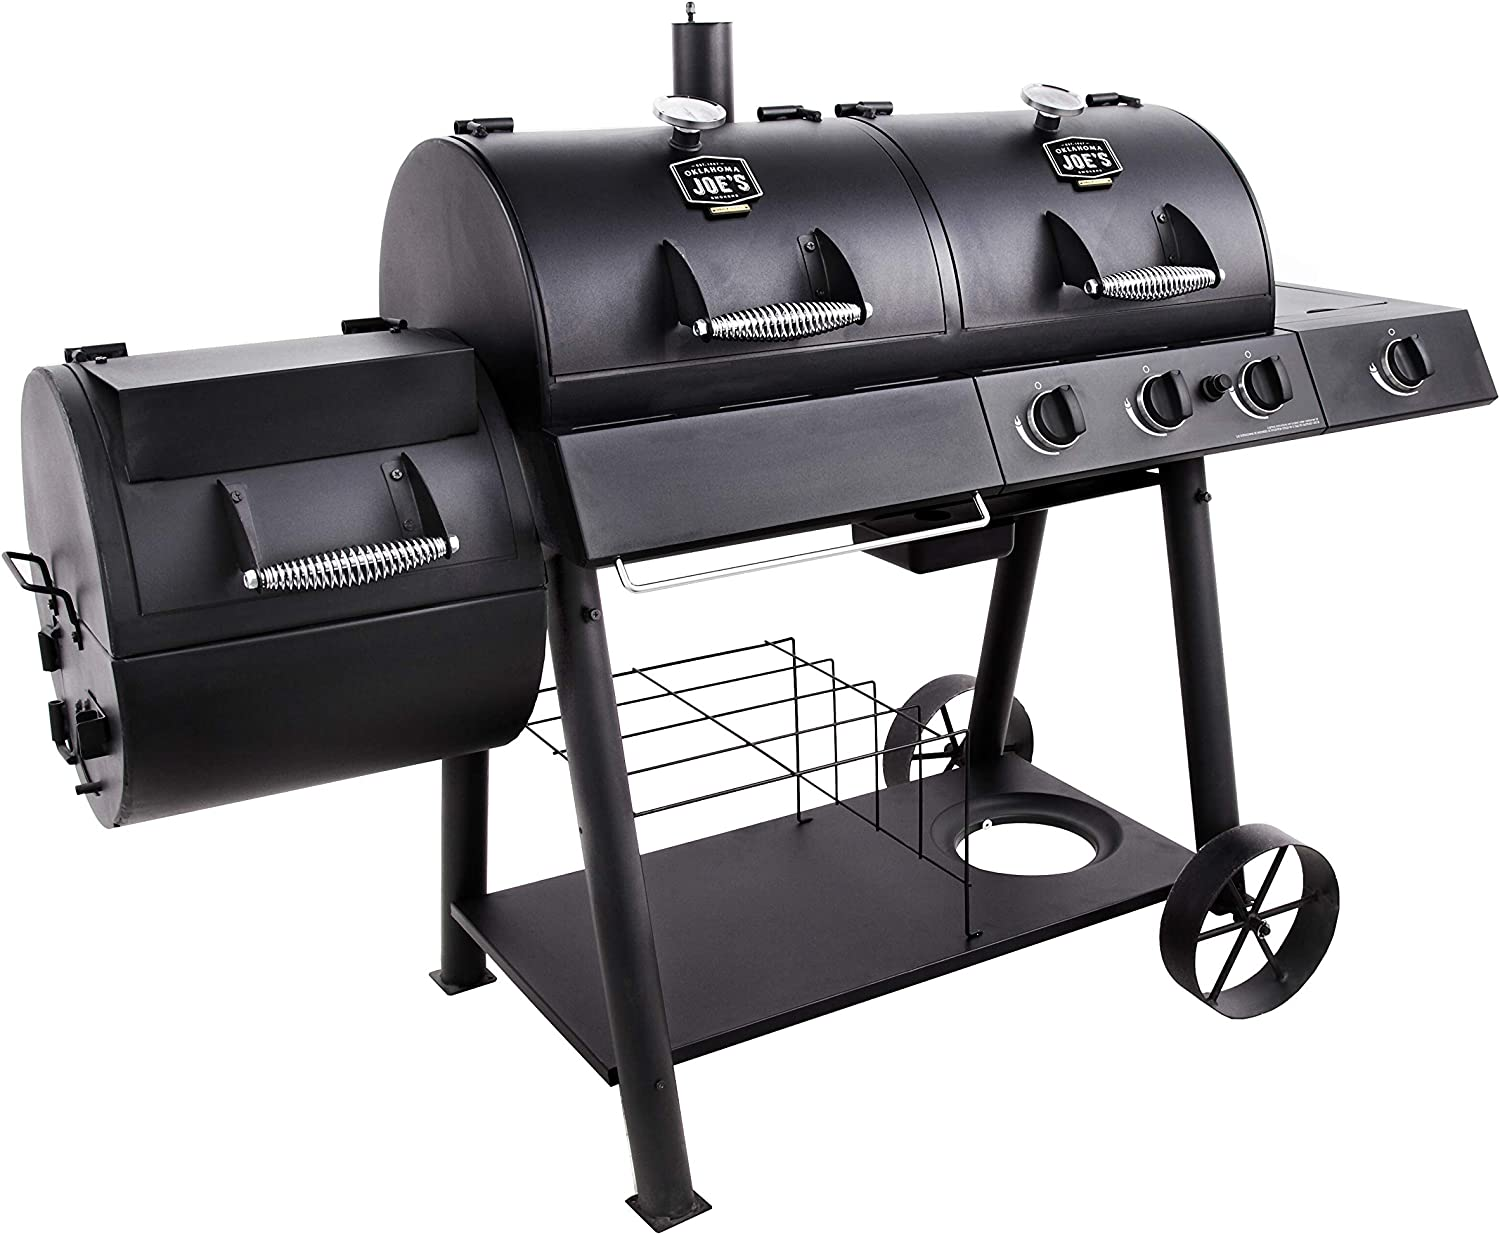 Oklahoma Joe's Charcoal/LP Gas/Smoker Combo review